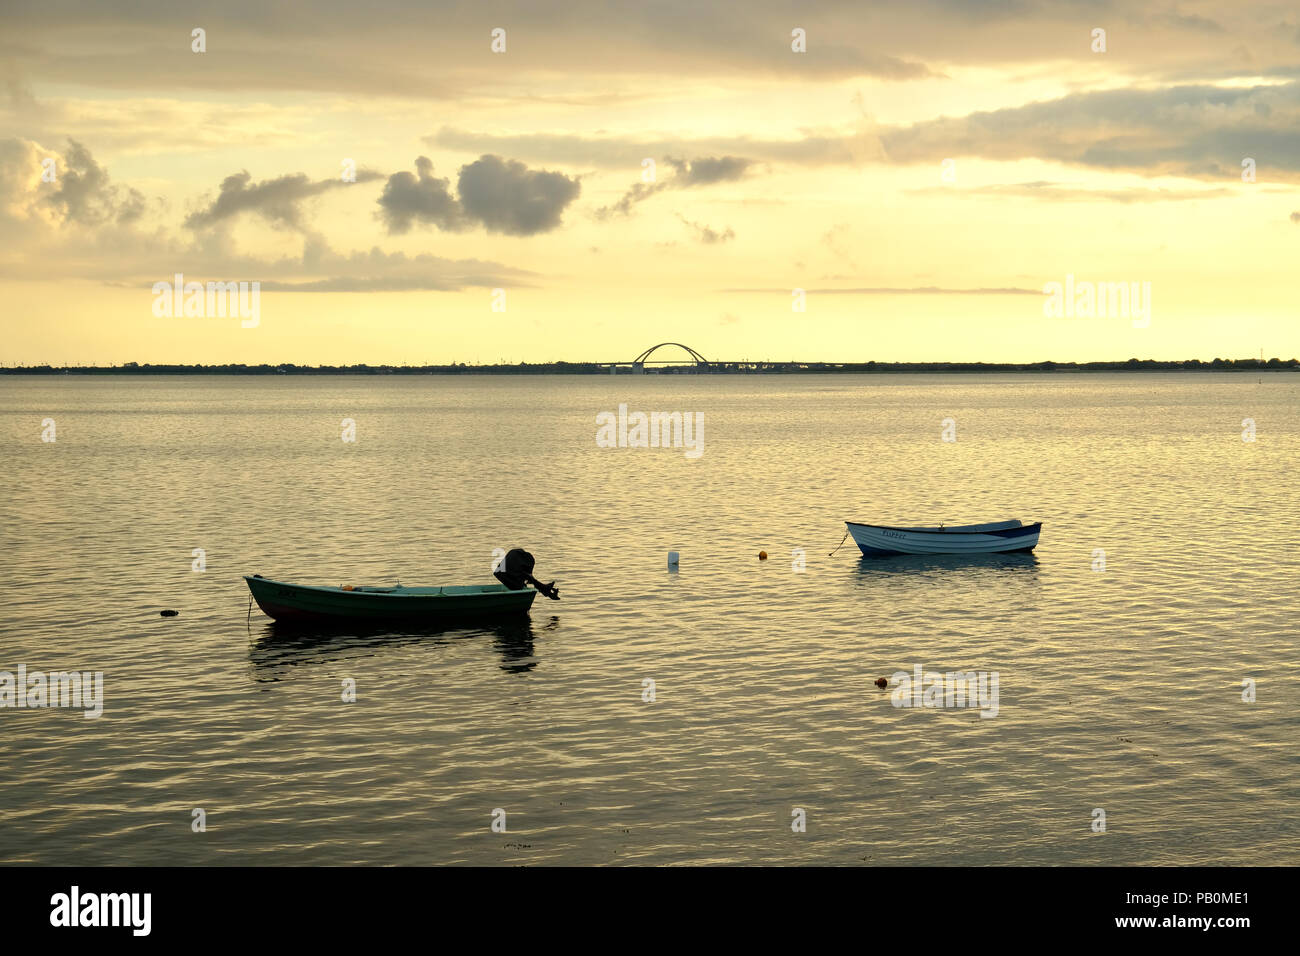 Cash Pool Heiligenhafen Wth Stock Photos Wth Stock Images Alamy